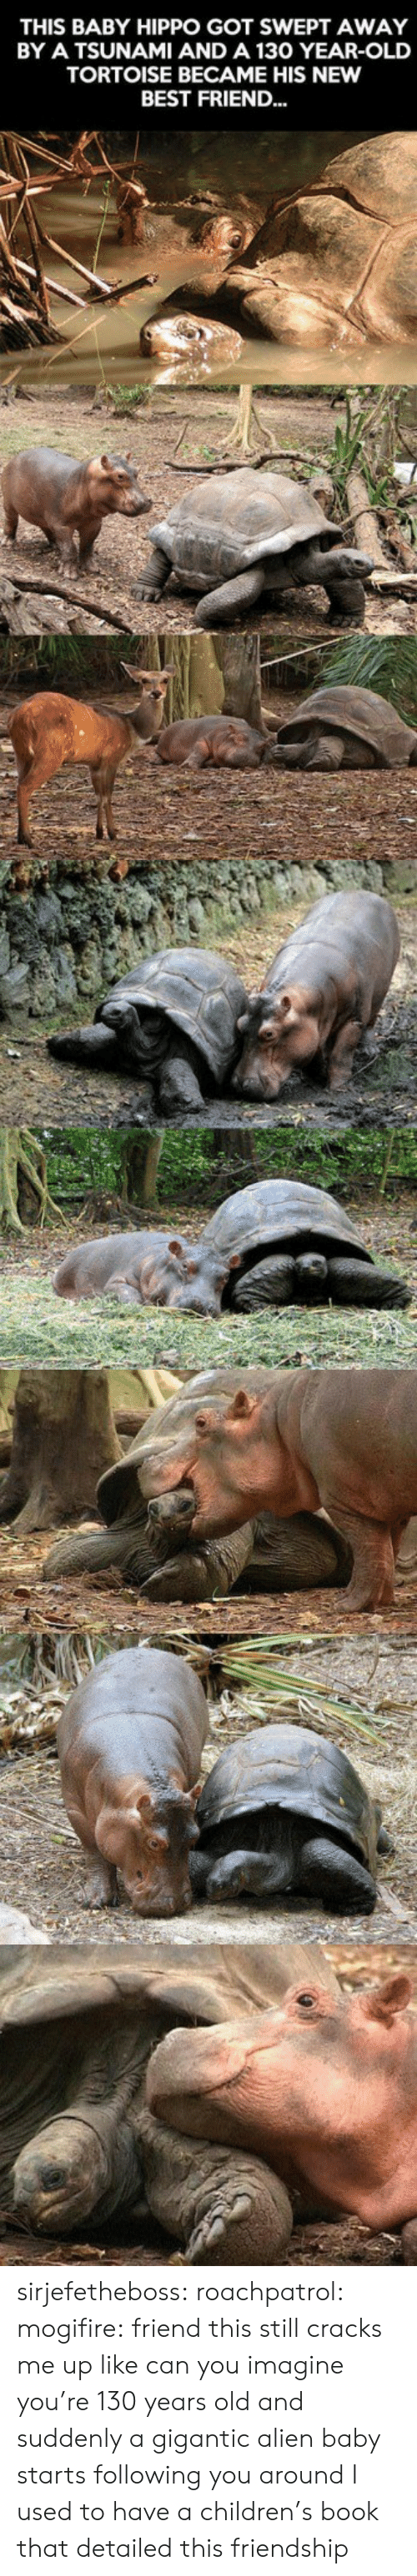 Baby Hippo: THIS BABY HIPPO GOT SWEPT AWAY  BY A TSUNAMI AND A 130 YEAR-OLD  TORTOISE BECAME HIS NEW  BEST FRIEND... sirjefetheboss:  roachpatrol: mogifire: friend this still cracks me up like can you imagine you're 130 years old and suddenly a gigantic alien baby starts following you around  I used to have a children's book that detailed this friendship